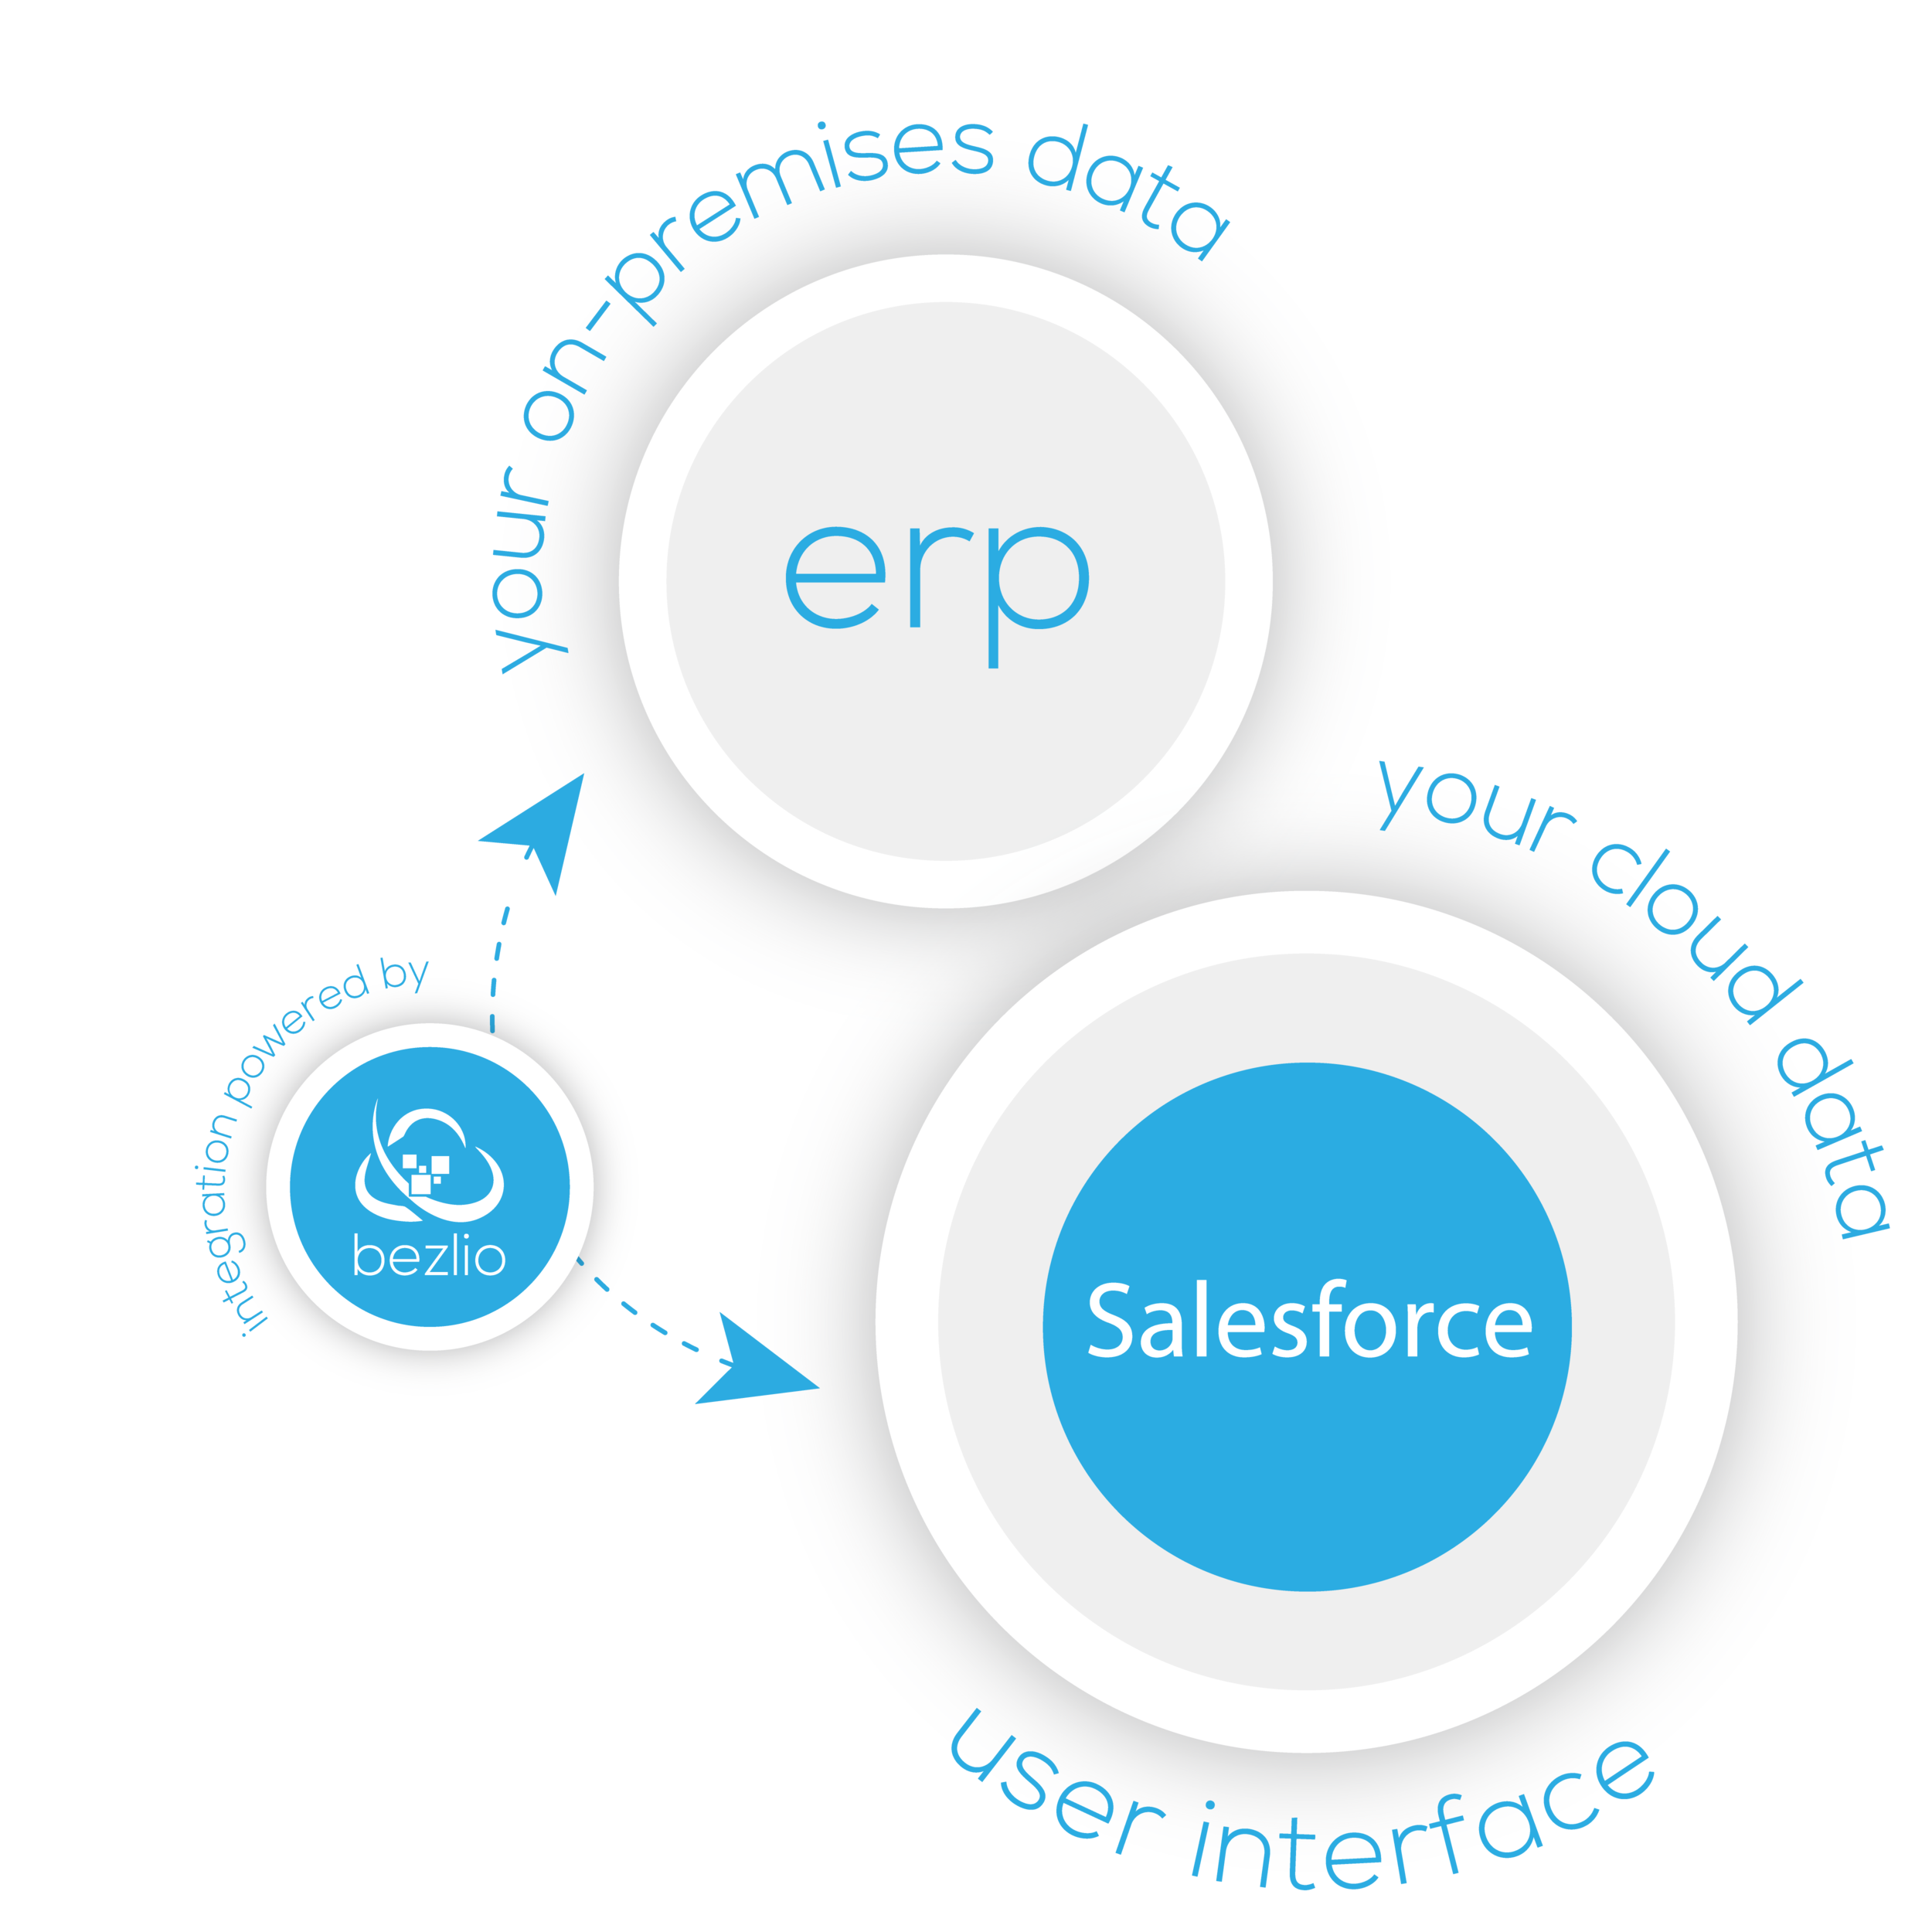 Illustration of how Bezlio works as a salesforce ERP integration tool. Bezlio works to pull your ERP data and displays the data in an embedded section of your Salesforce screen.